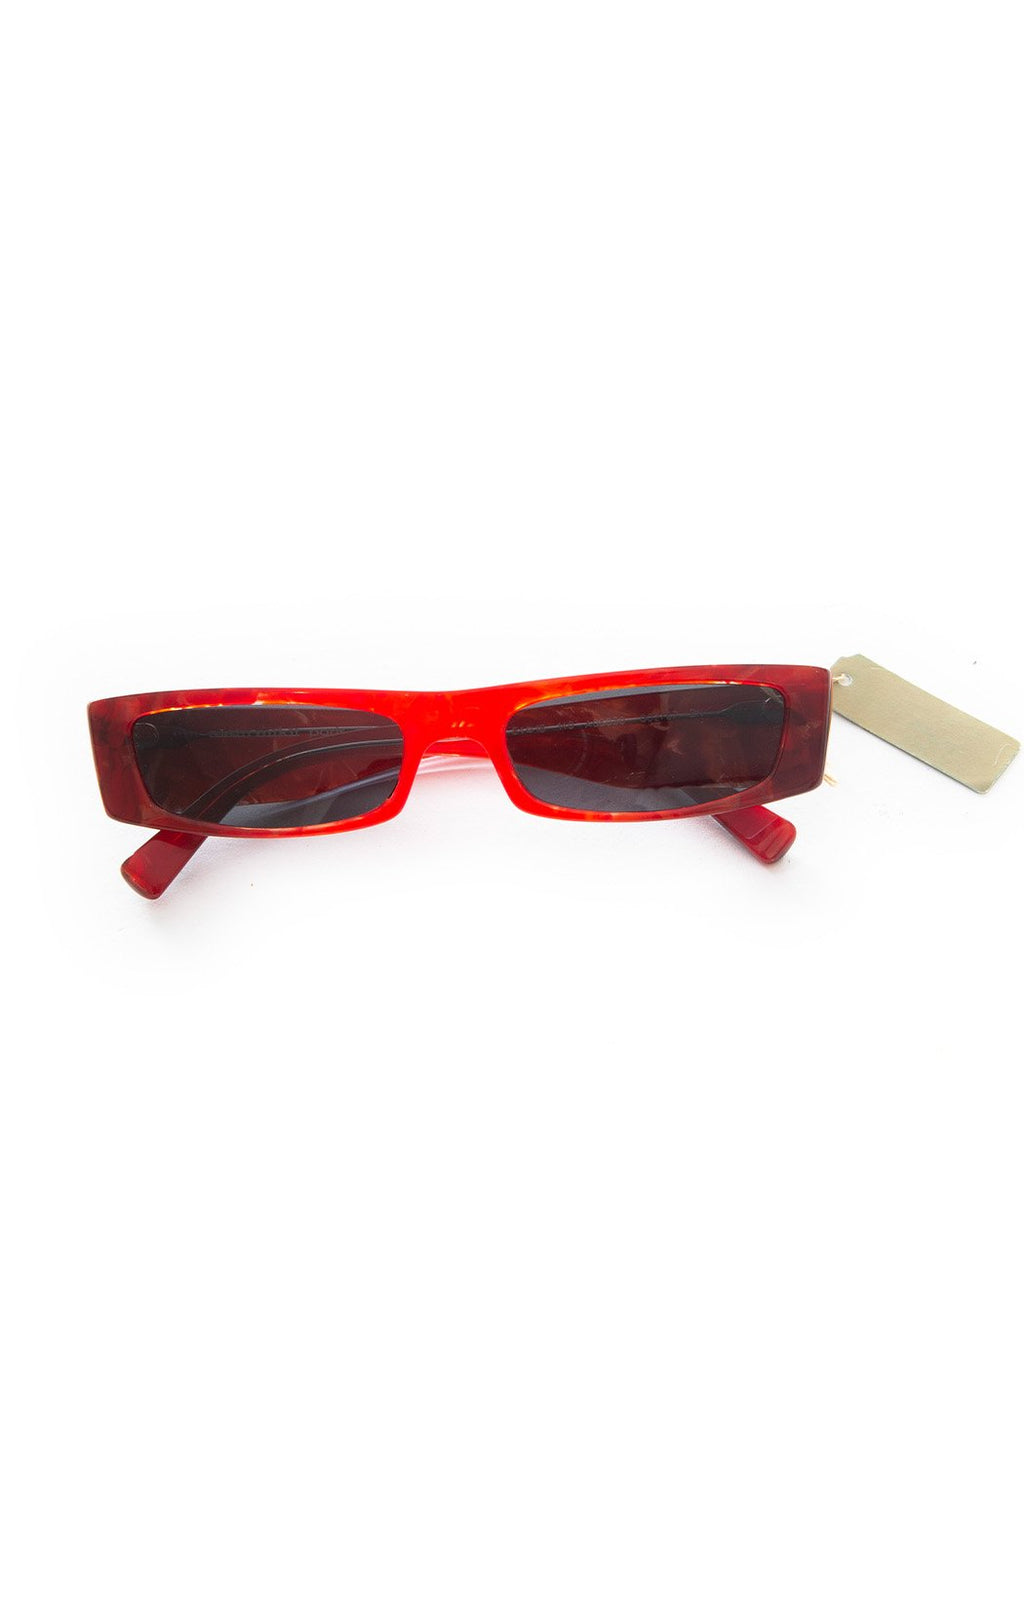 "Front view of ALEXANDRE VAUTHIER for Alain Mikli with tags Sunglasses Size: 1.25"" H x 5.5"" W"